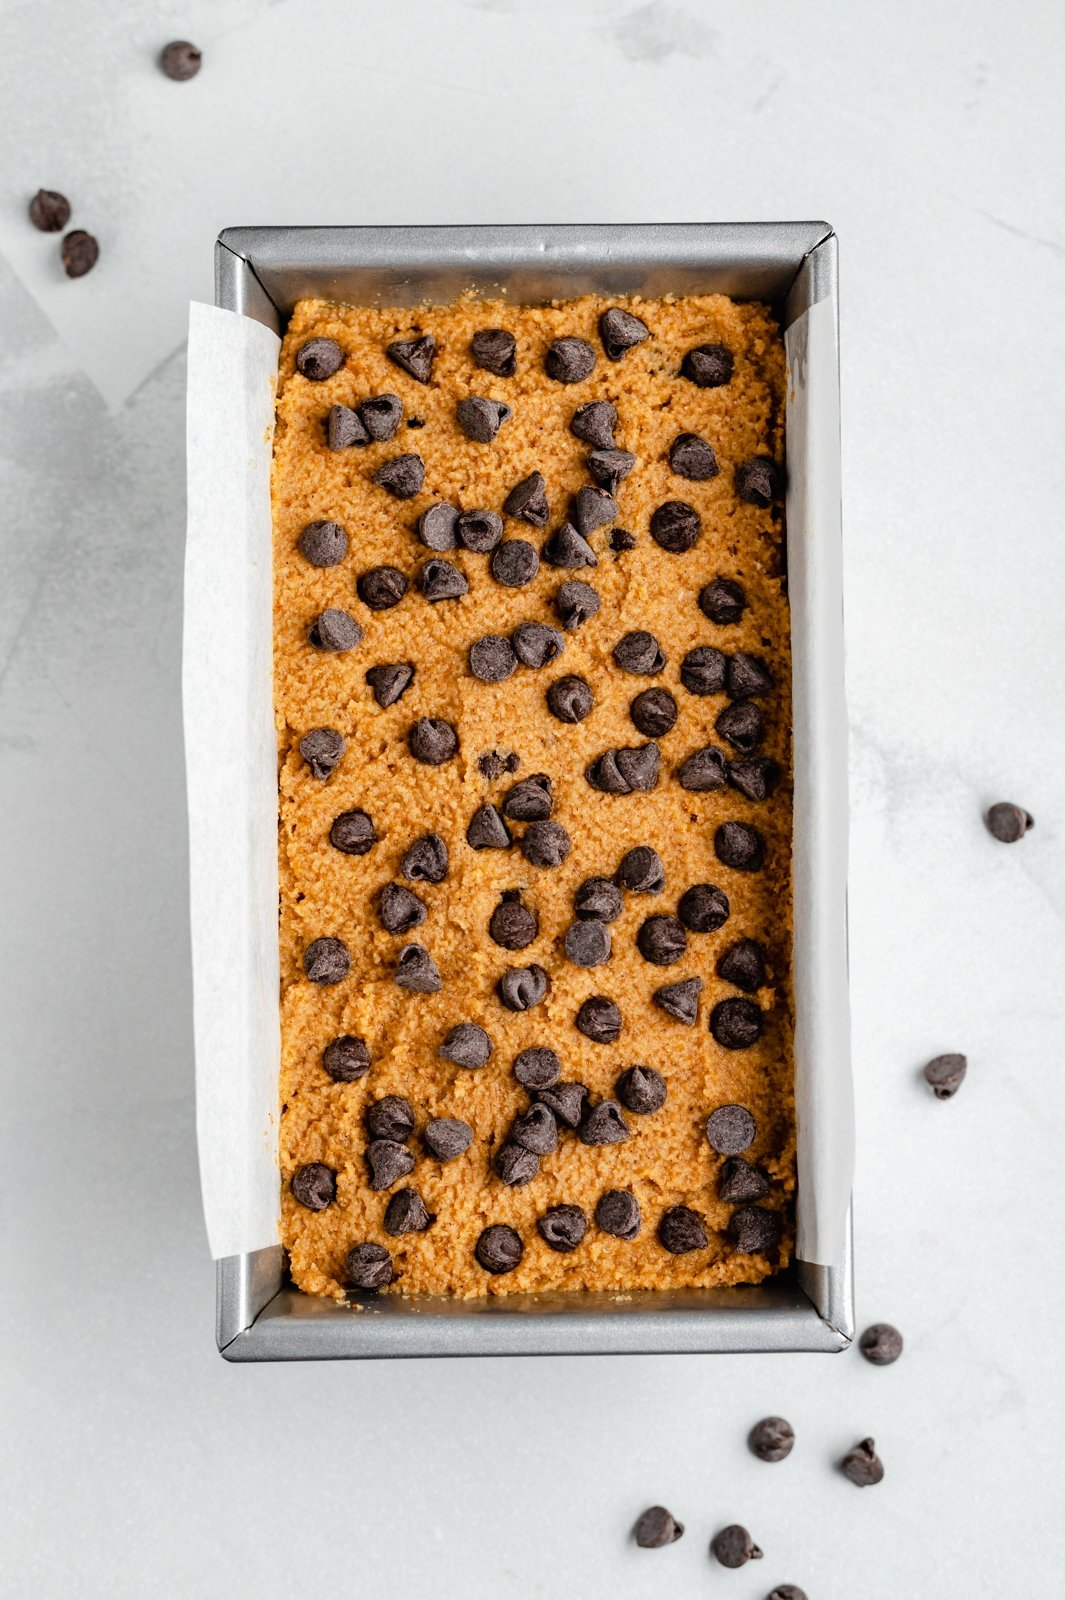 unbaked gluten free pumpkin bread with chocolate chips in a loaf pan